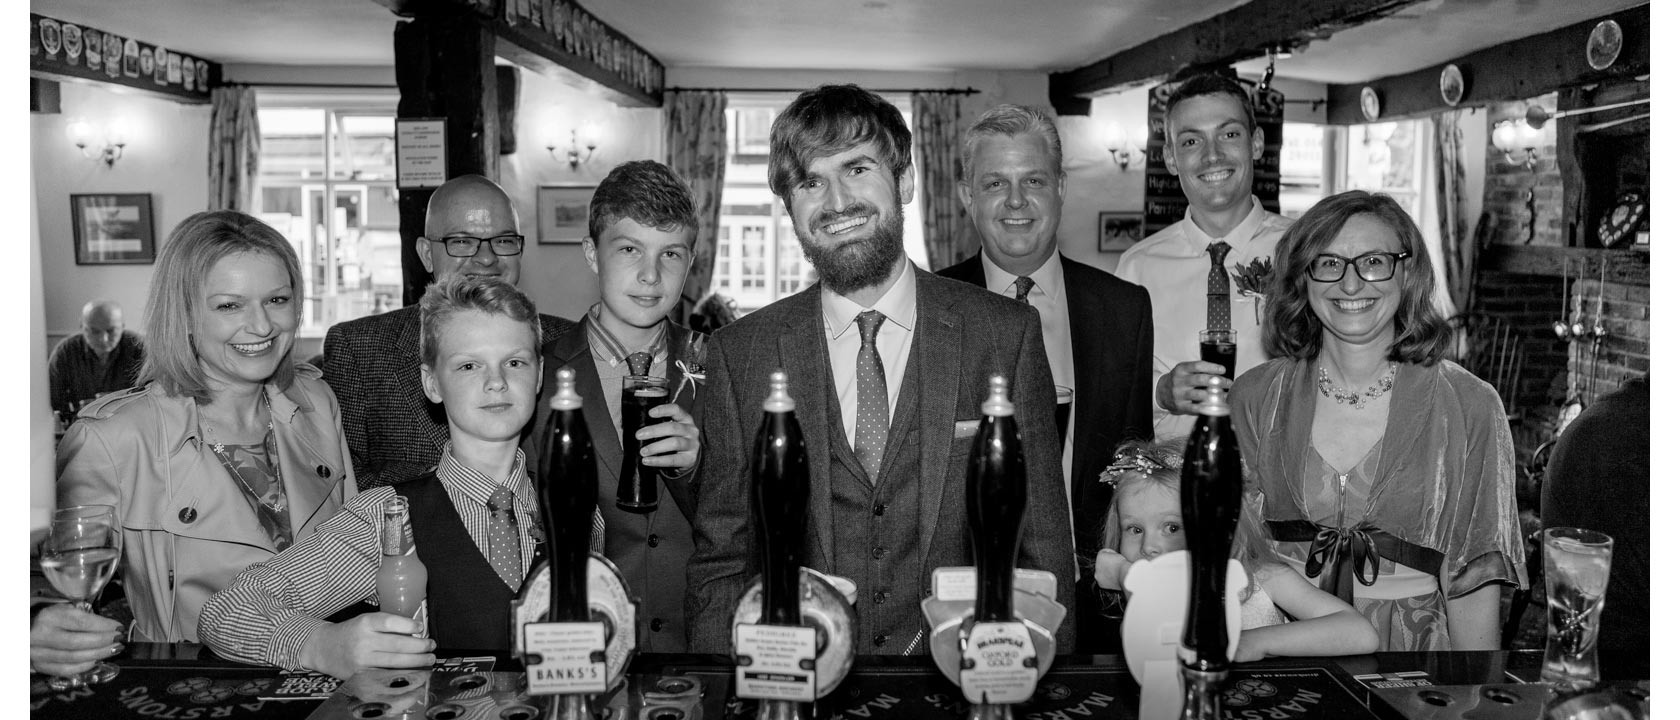 A handsome groom surrounded by his loving family with a setting of a stunning bar.